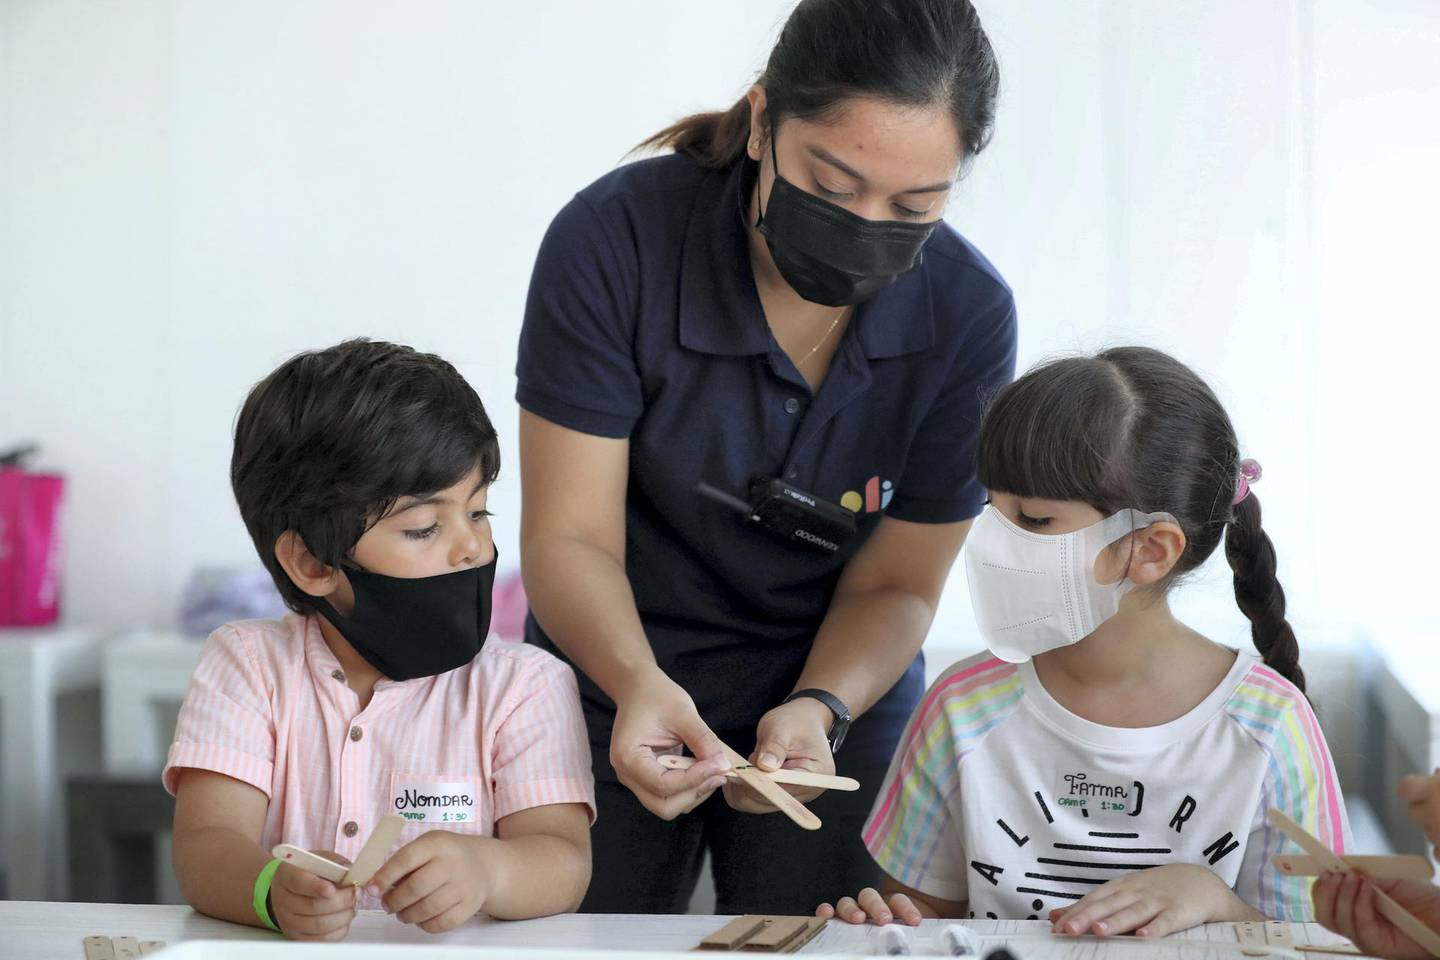 Dubai, United Arab Emirates - Reporter: N/A. Photo project. Children's summer activities. Nomdar and Fatma do mechanical engineering with instructor Sunshine at the OliOli summer camp. Summer activities for teenagers and children open up after school has finished with Covid-19/Coronavirus protection measures. Tuesday, July 14th, 2020. Dubai. Chris Whiteoak / The National